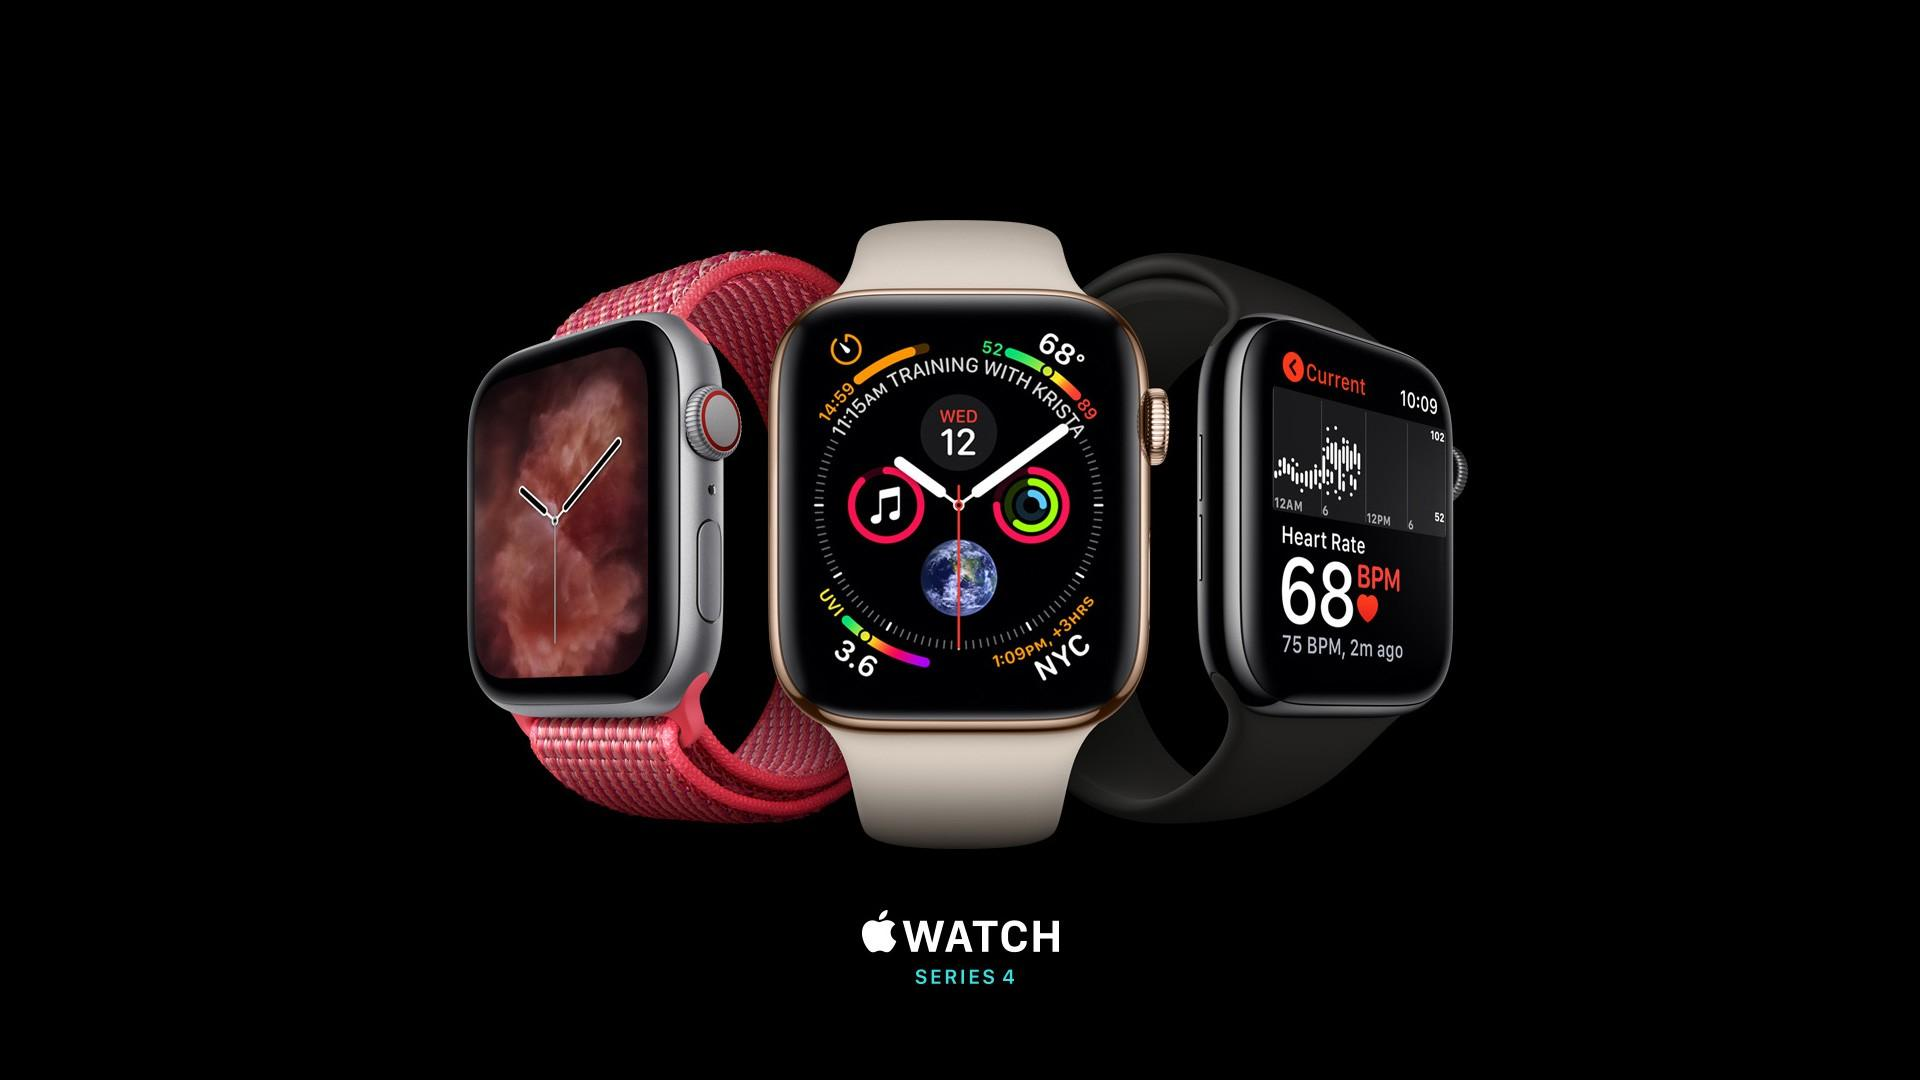 Wallpapers Apple Watch Series 4, silver, gold, black, Apple September